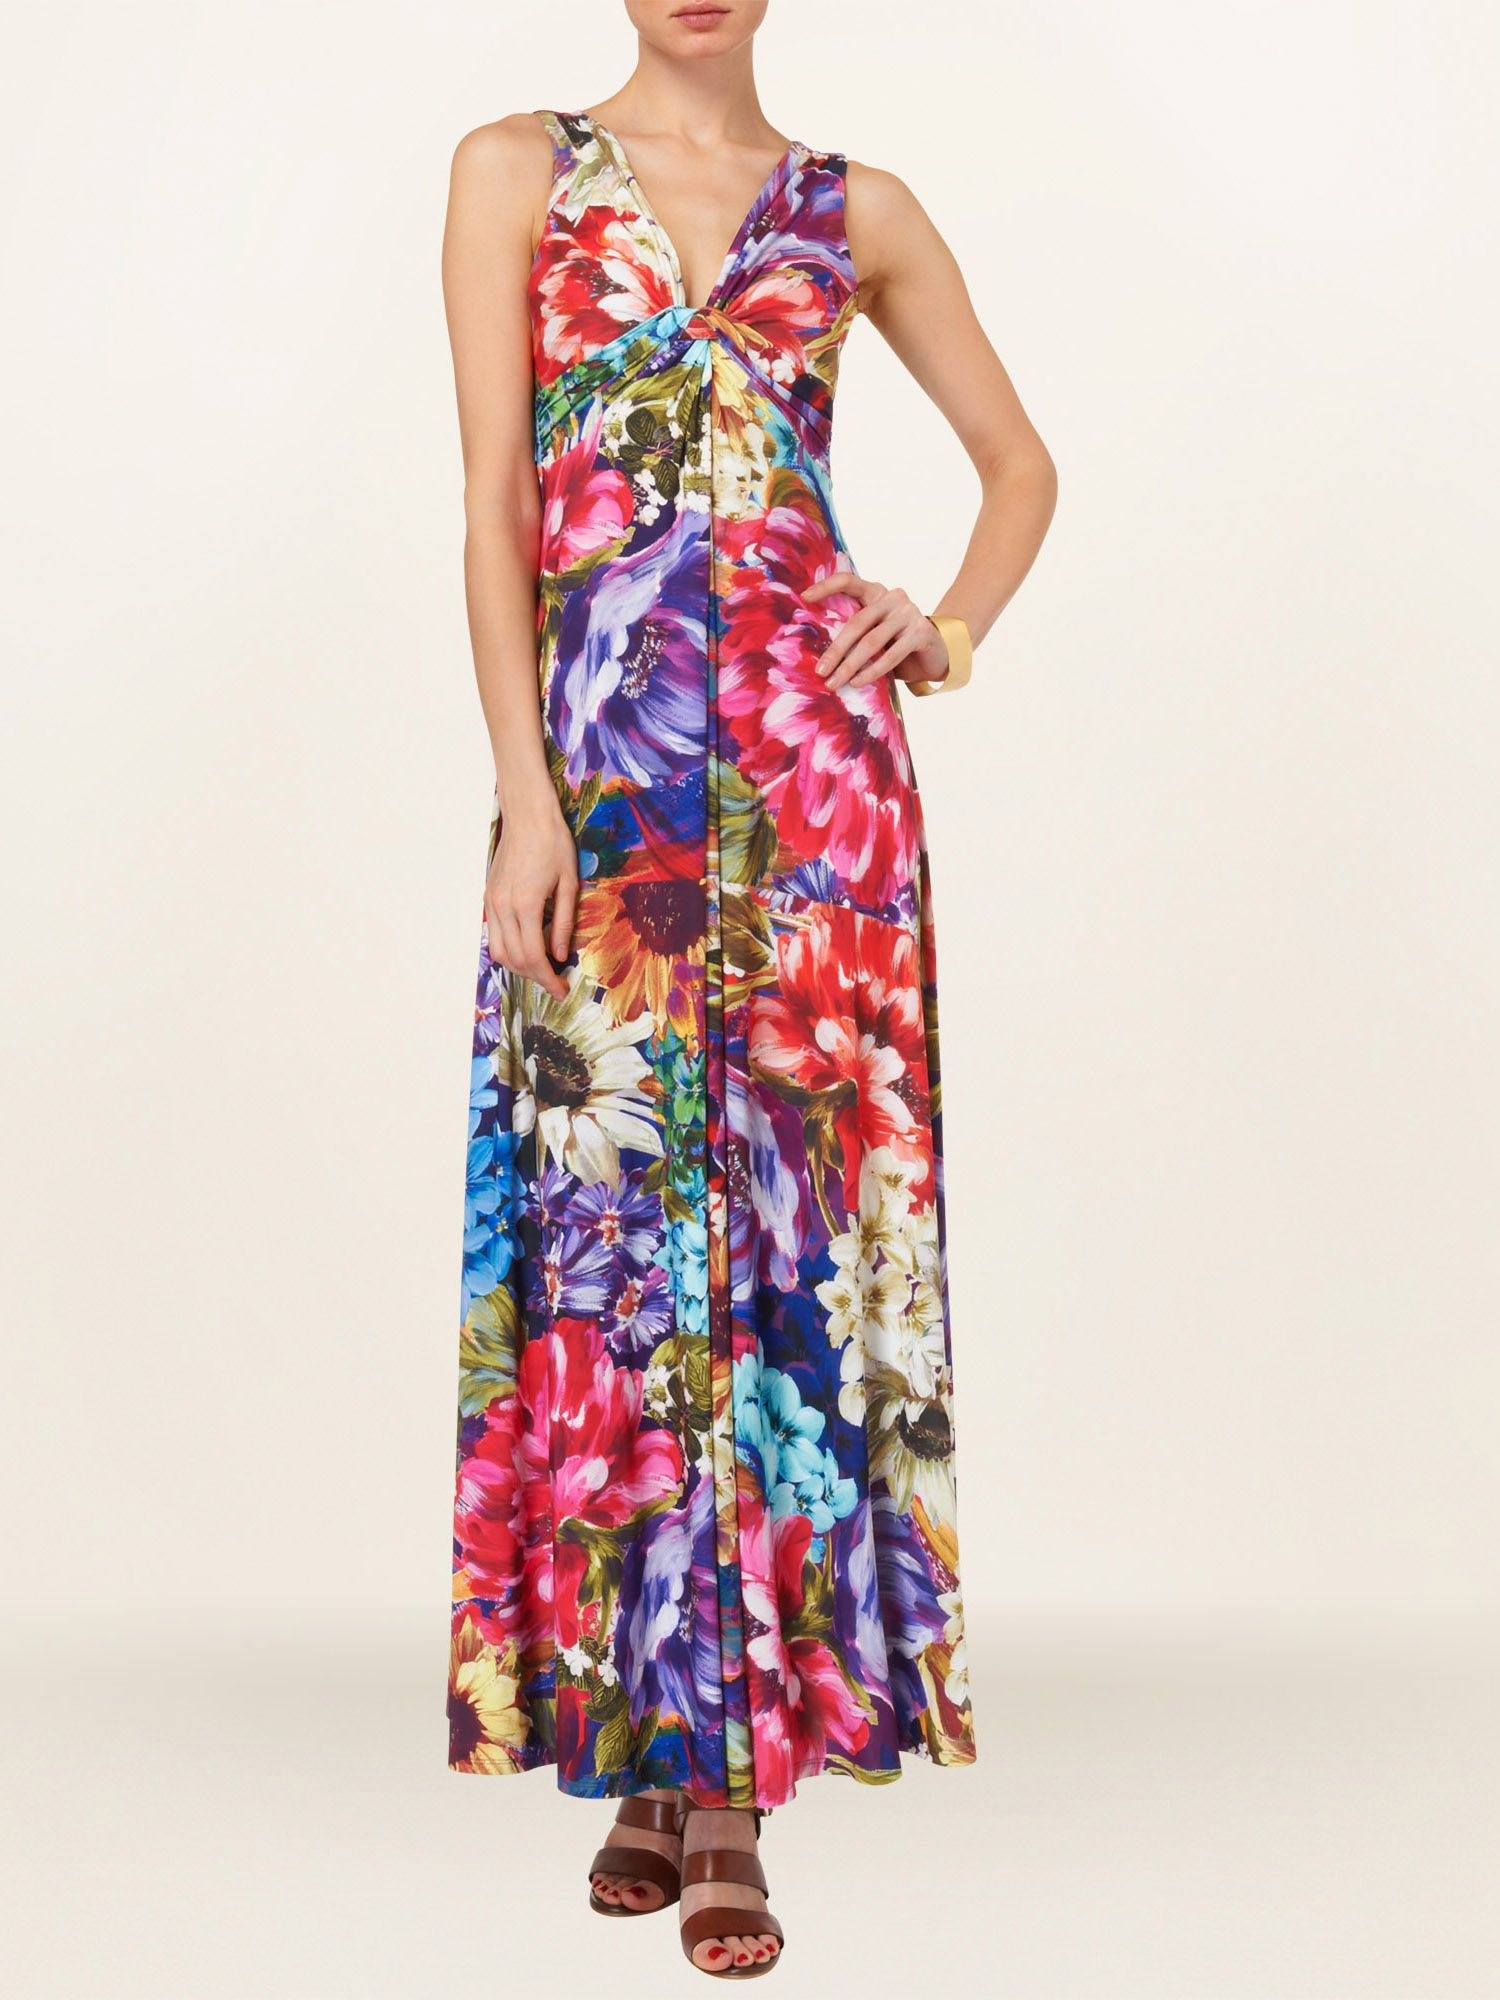 Martinique maxi dress